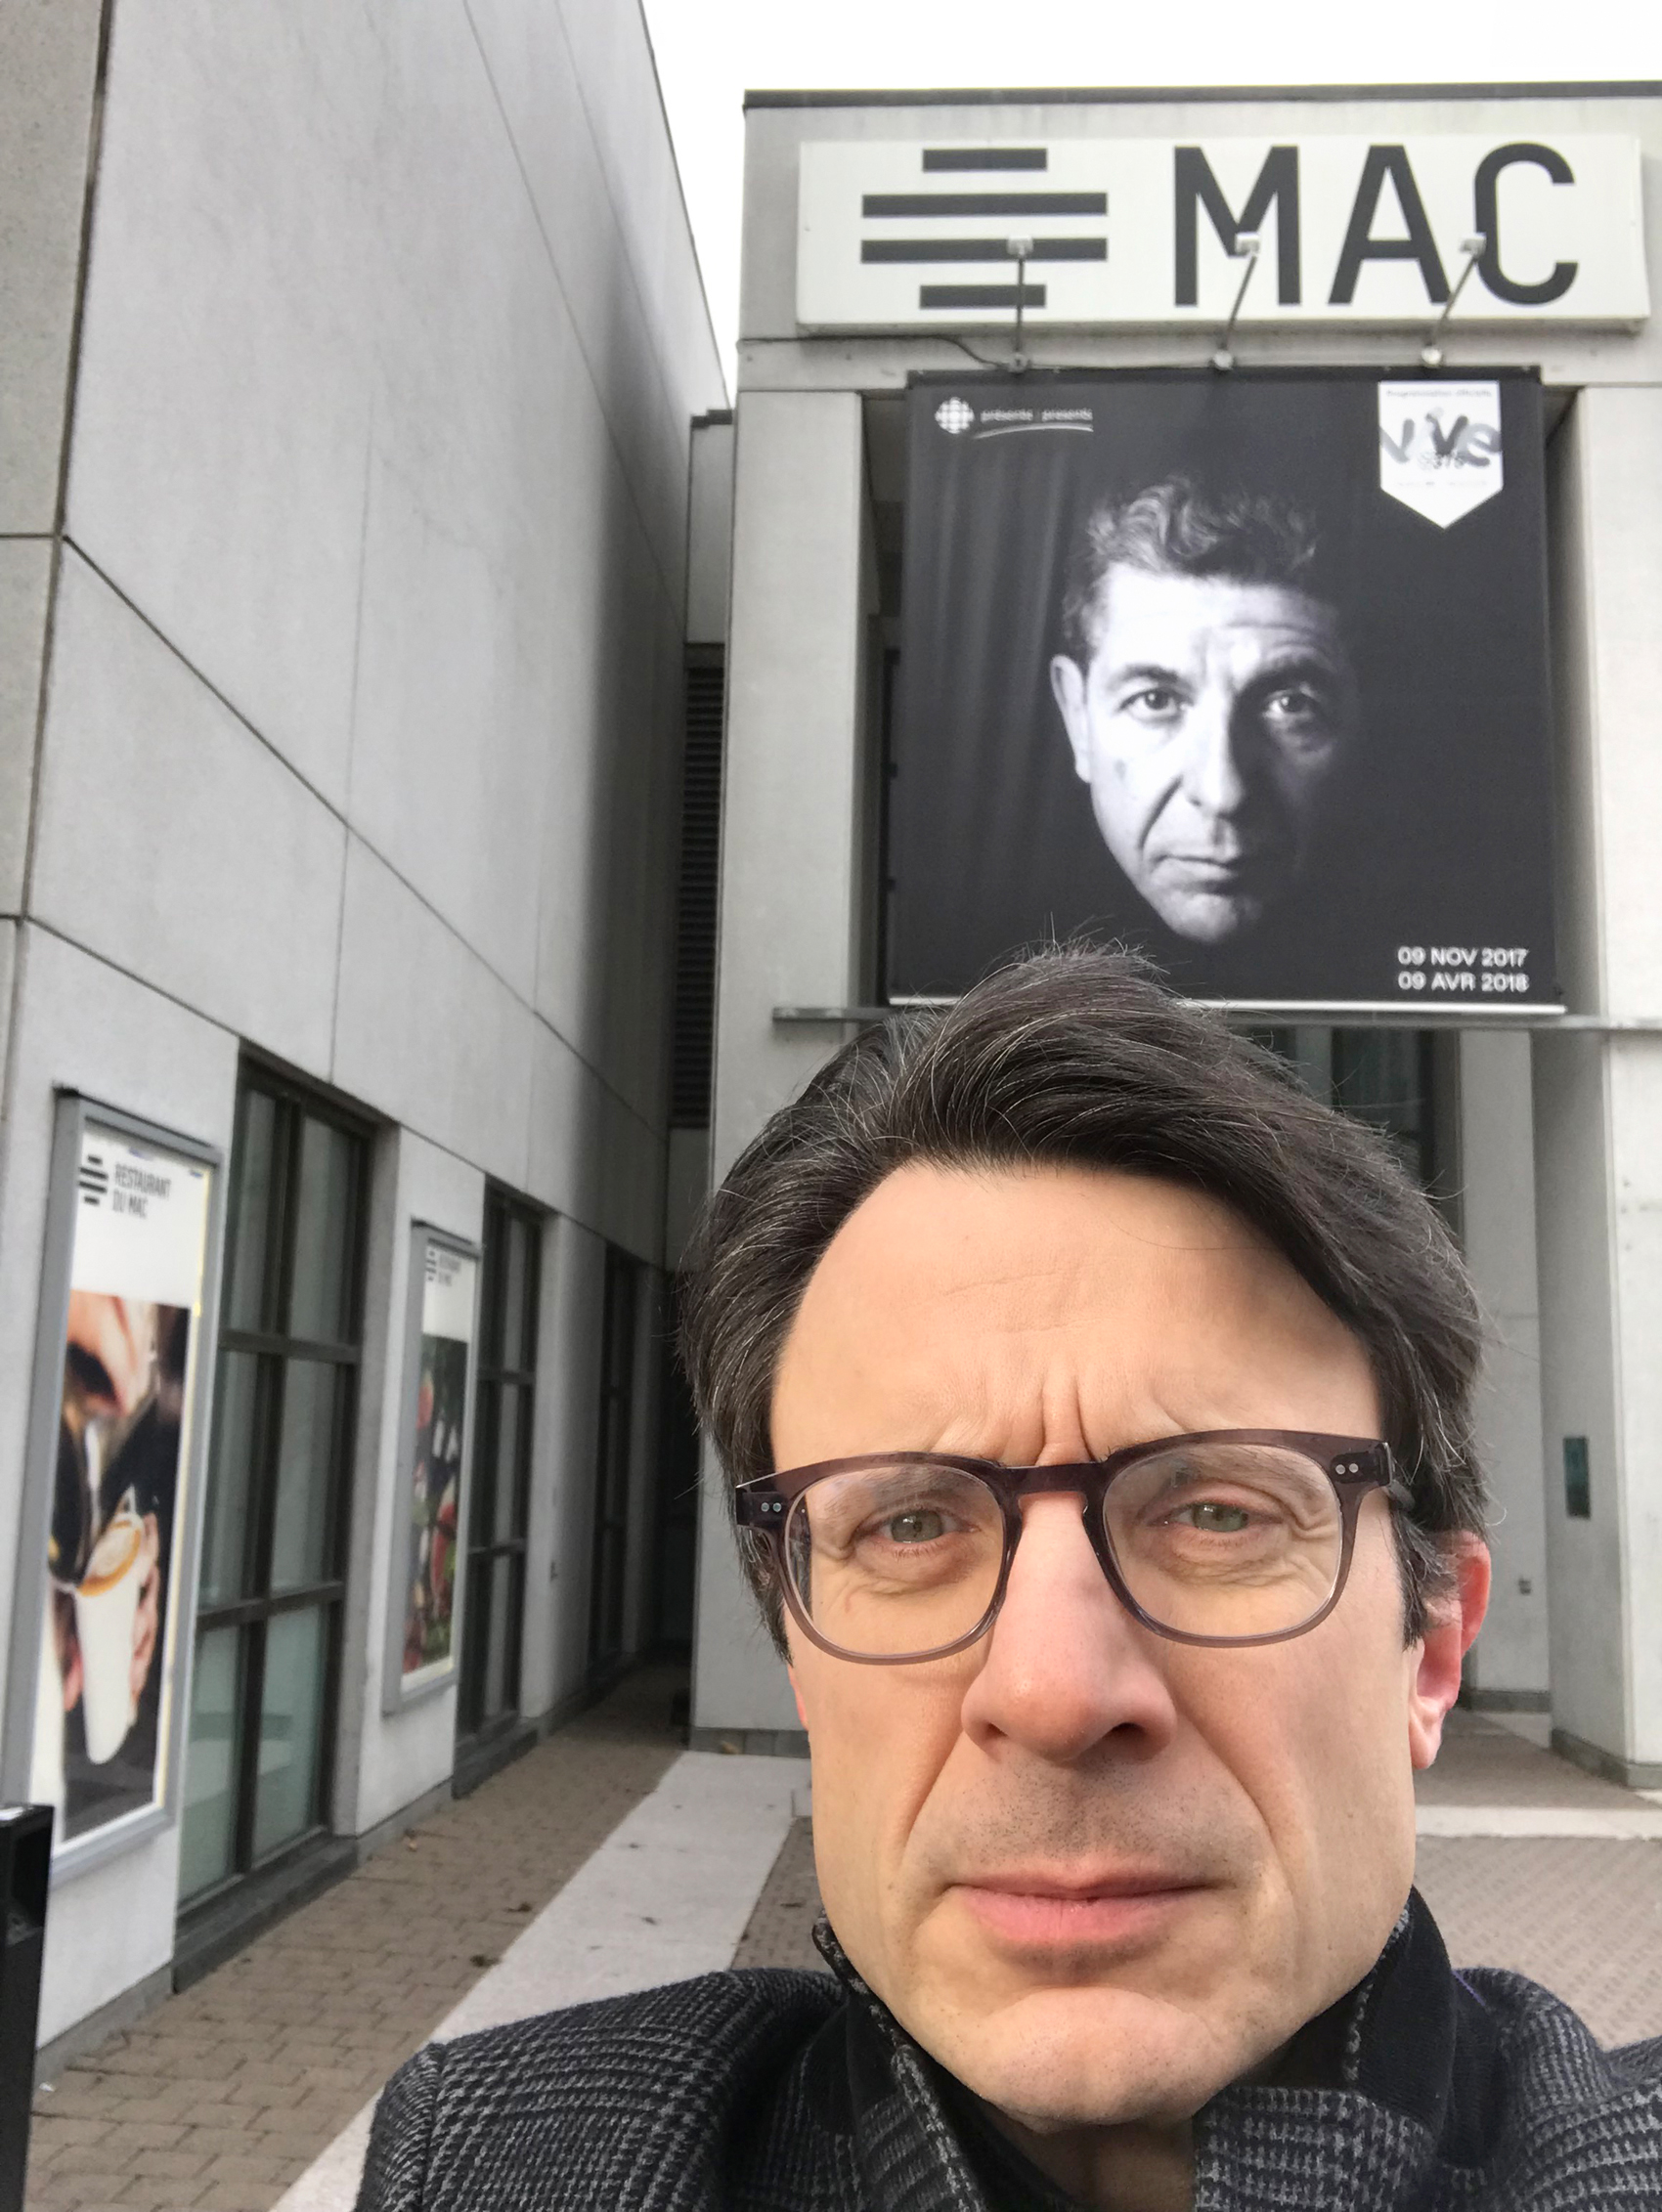 Thomas Hadjistavropoulos poses for a selfie outside of the Montreal Museum of Contemporary Art. A poster of Leonard Cohen, his famous idol, is in the background.